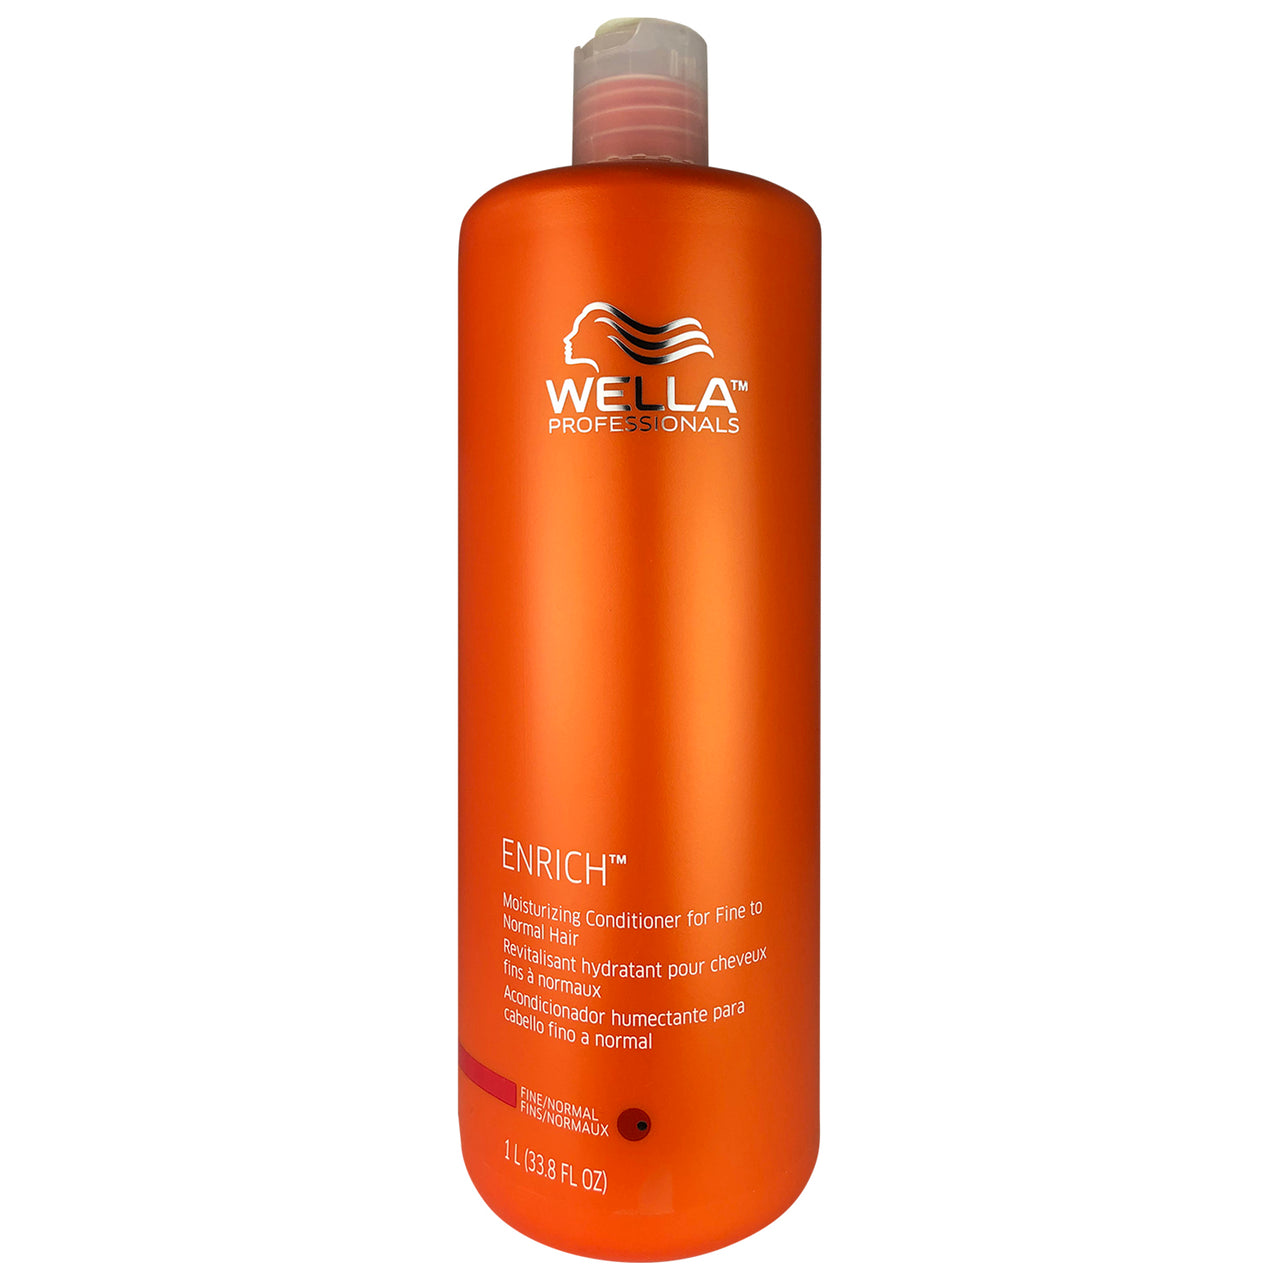 Wella Enrich Moisturizing Conditioner for Fine to Normal Hair 33.8 oz